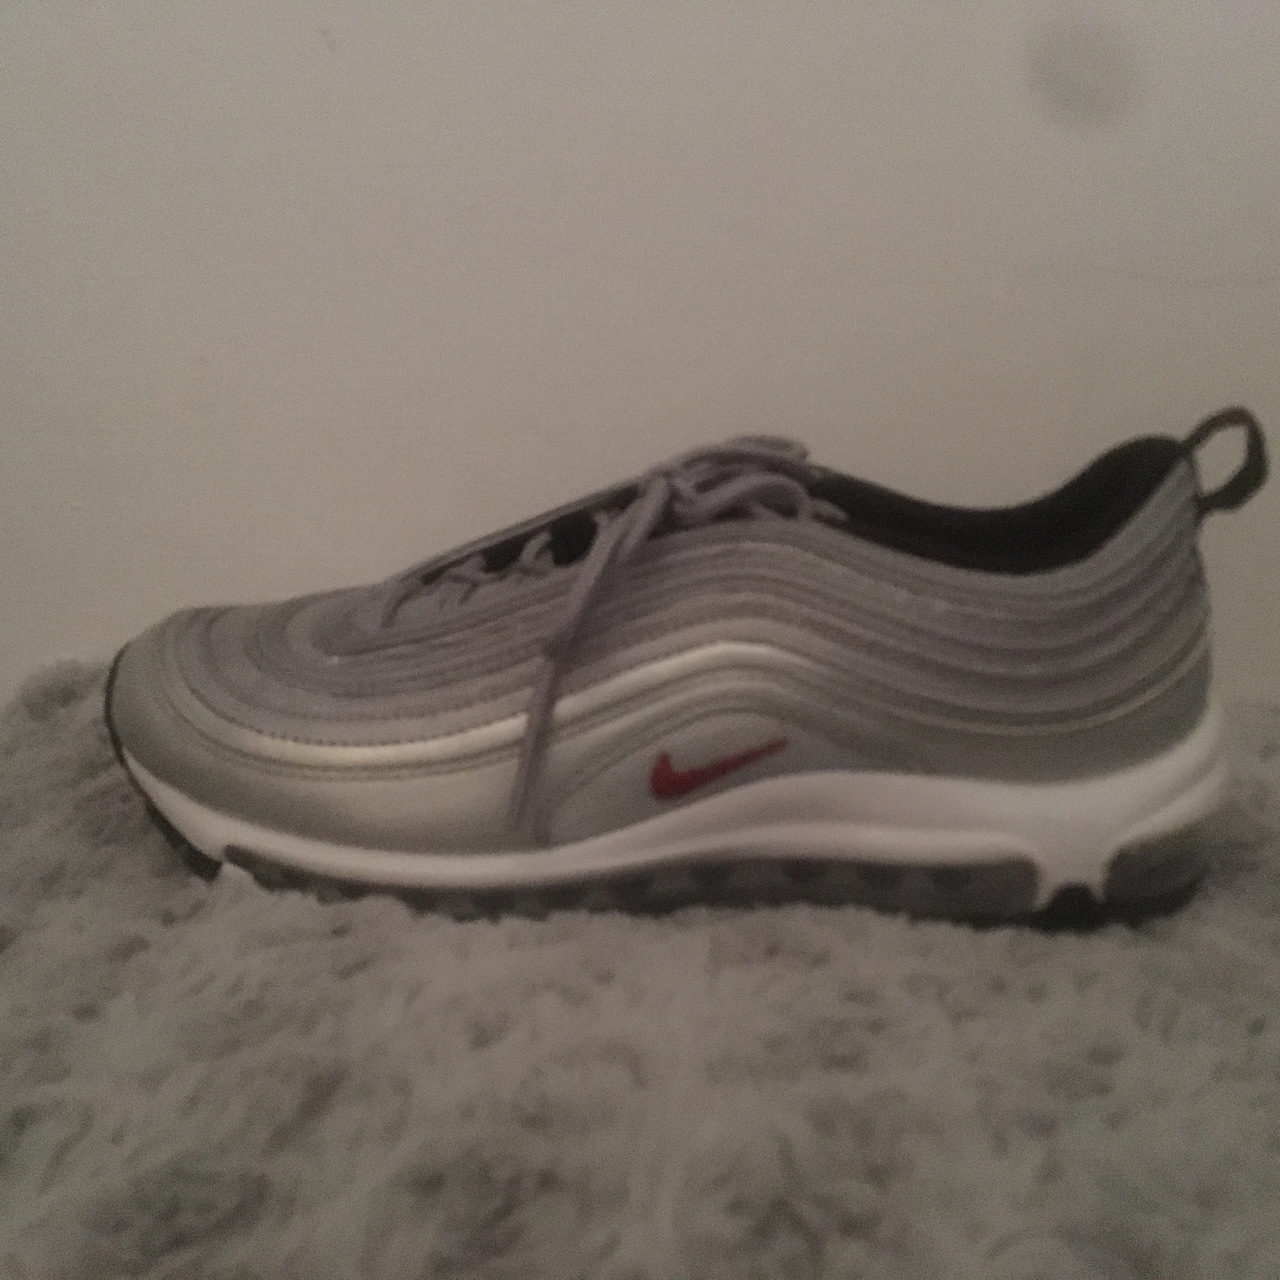 save off 8dc25 bb8bf Nike air max 97. Only worn once to a restaurant! Uk... - Depop